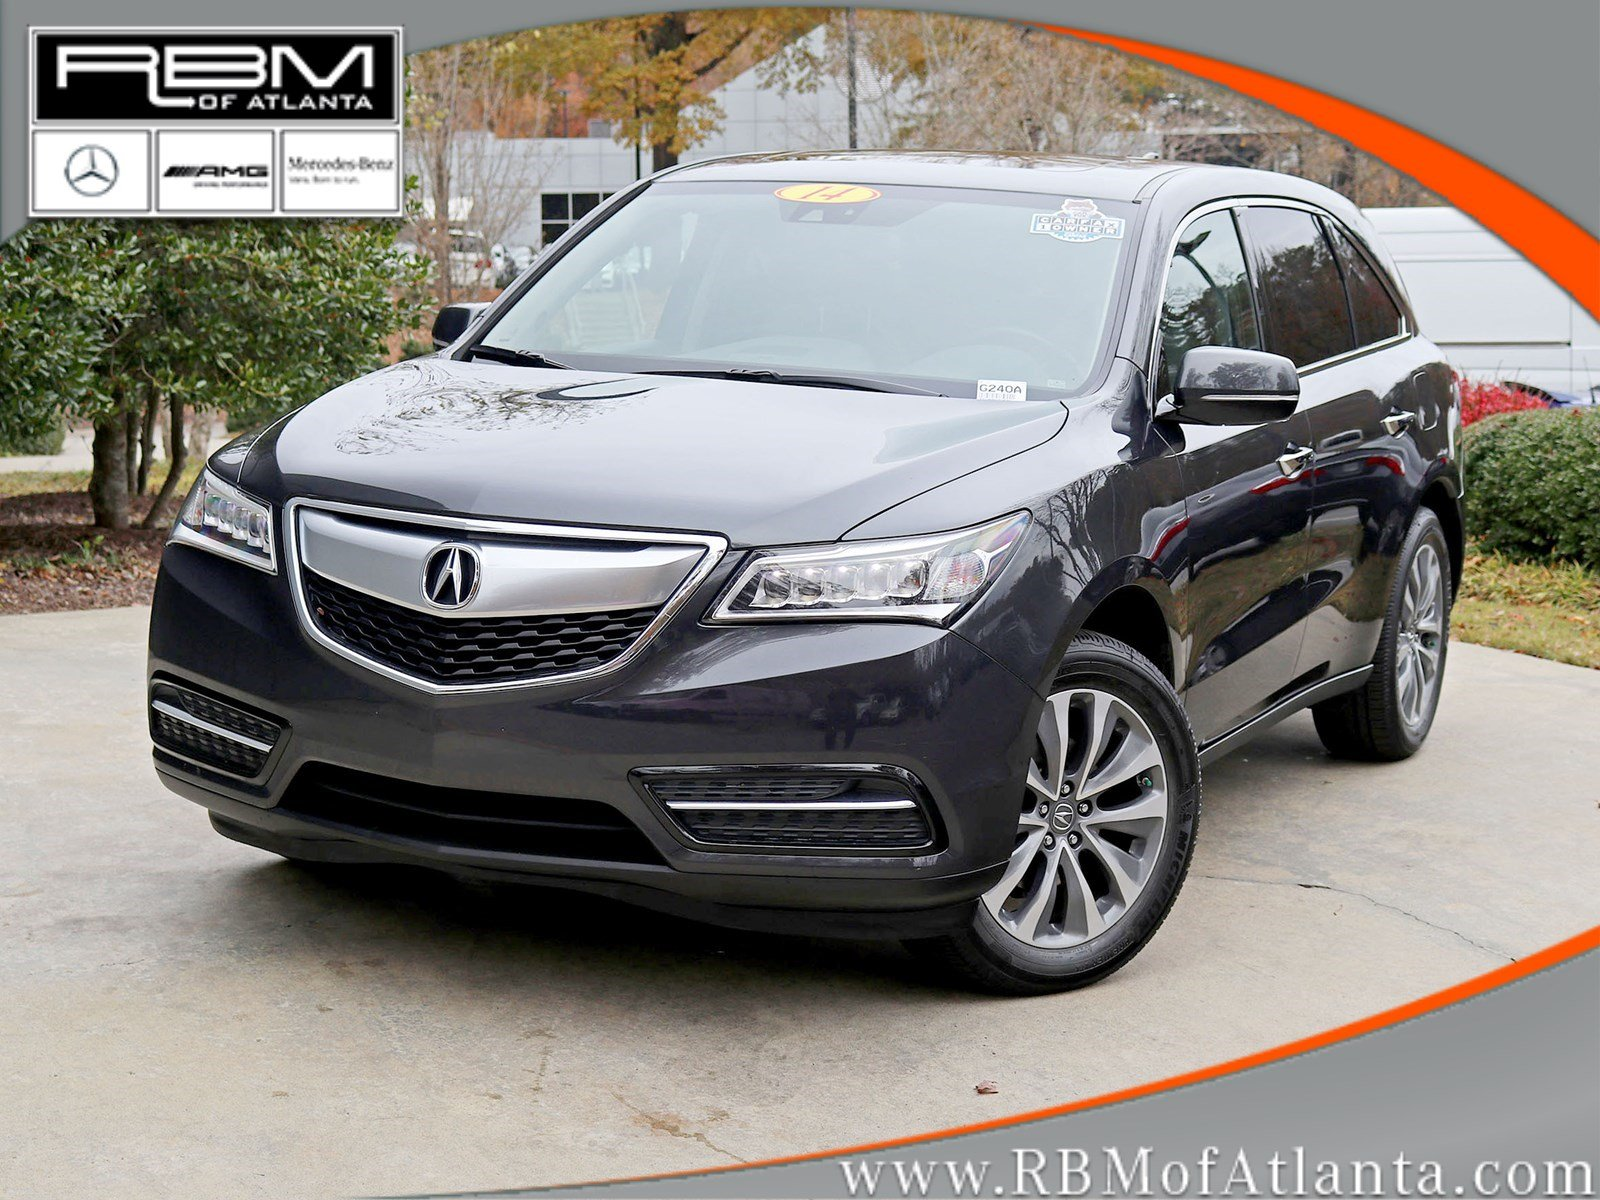 Pre Owned 2014 Acura MDX Tech Pkg Sport Utility in Atlanta G240A